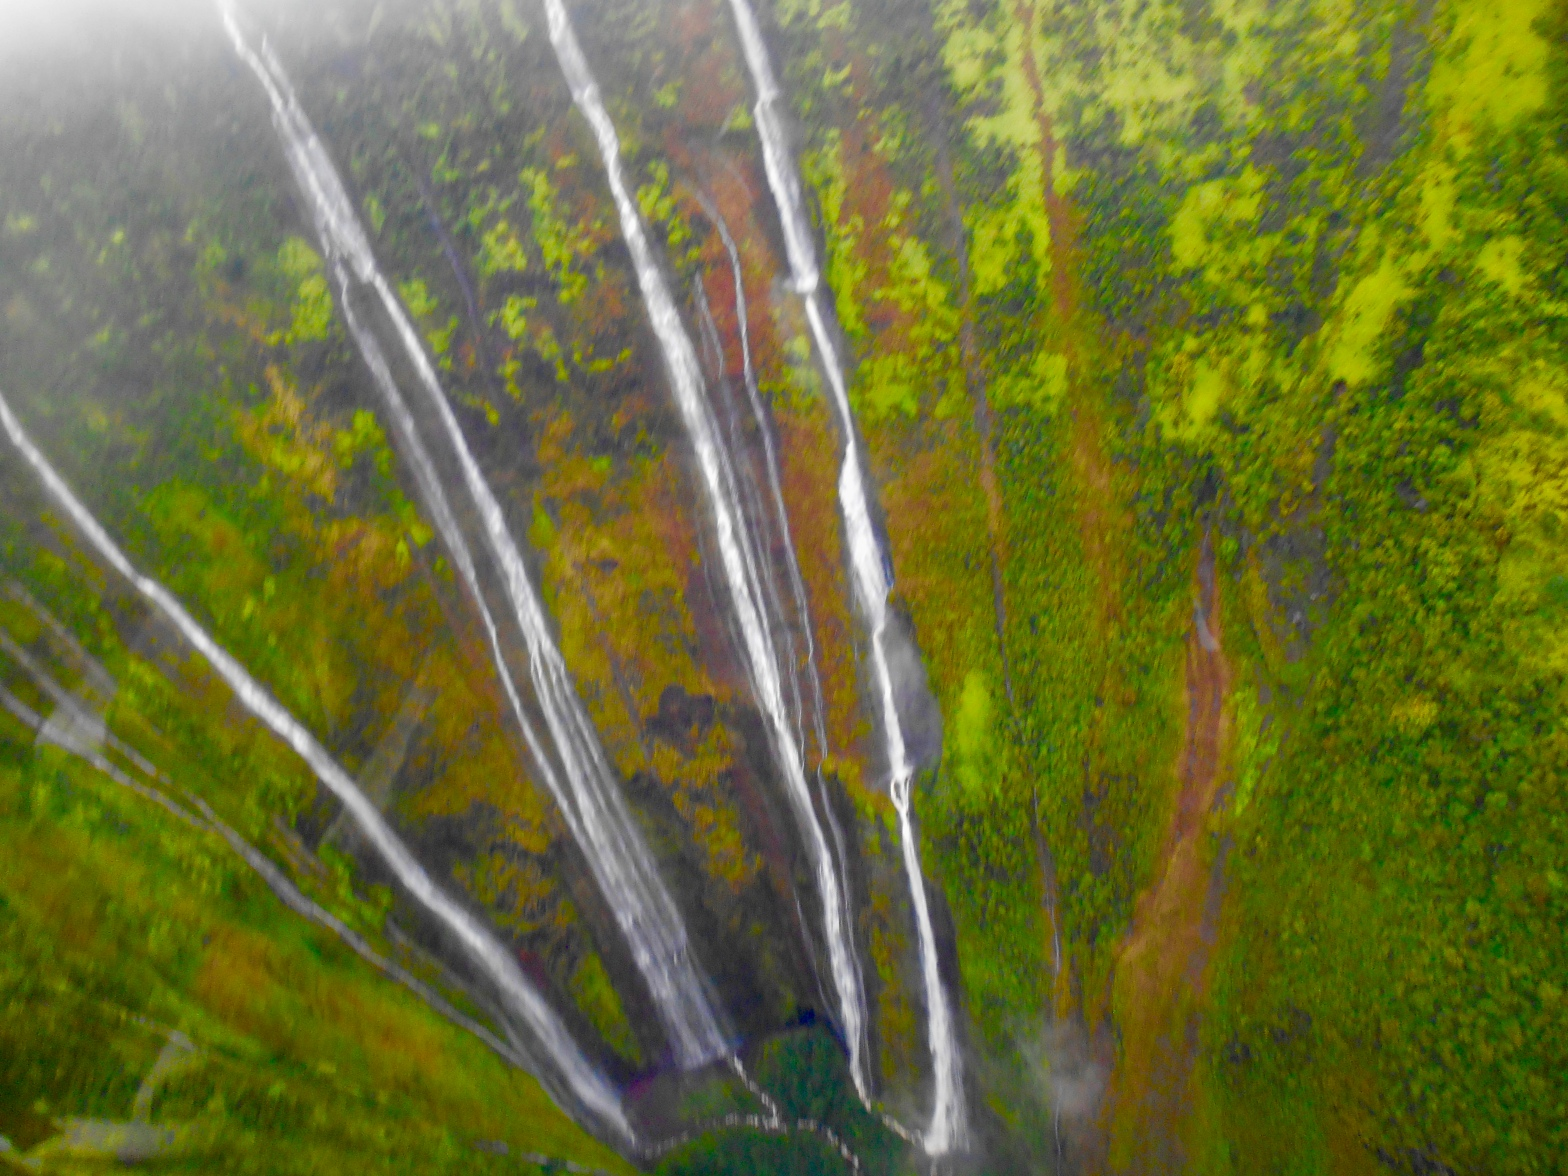 image of waterfall in Maui, Hawaii